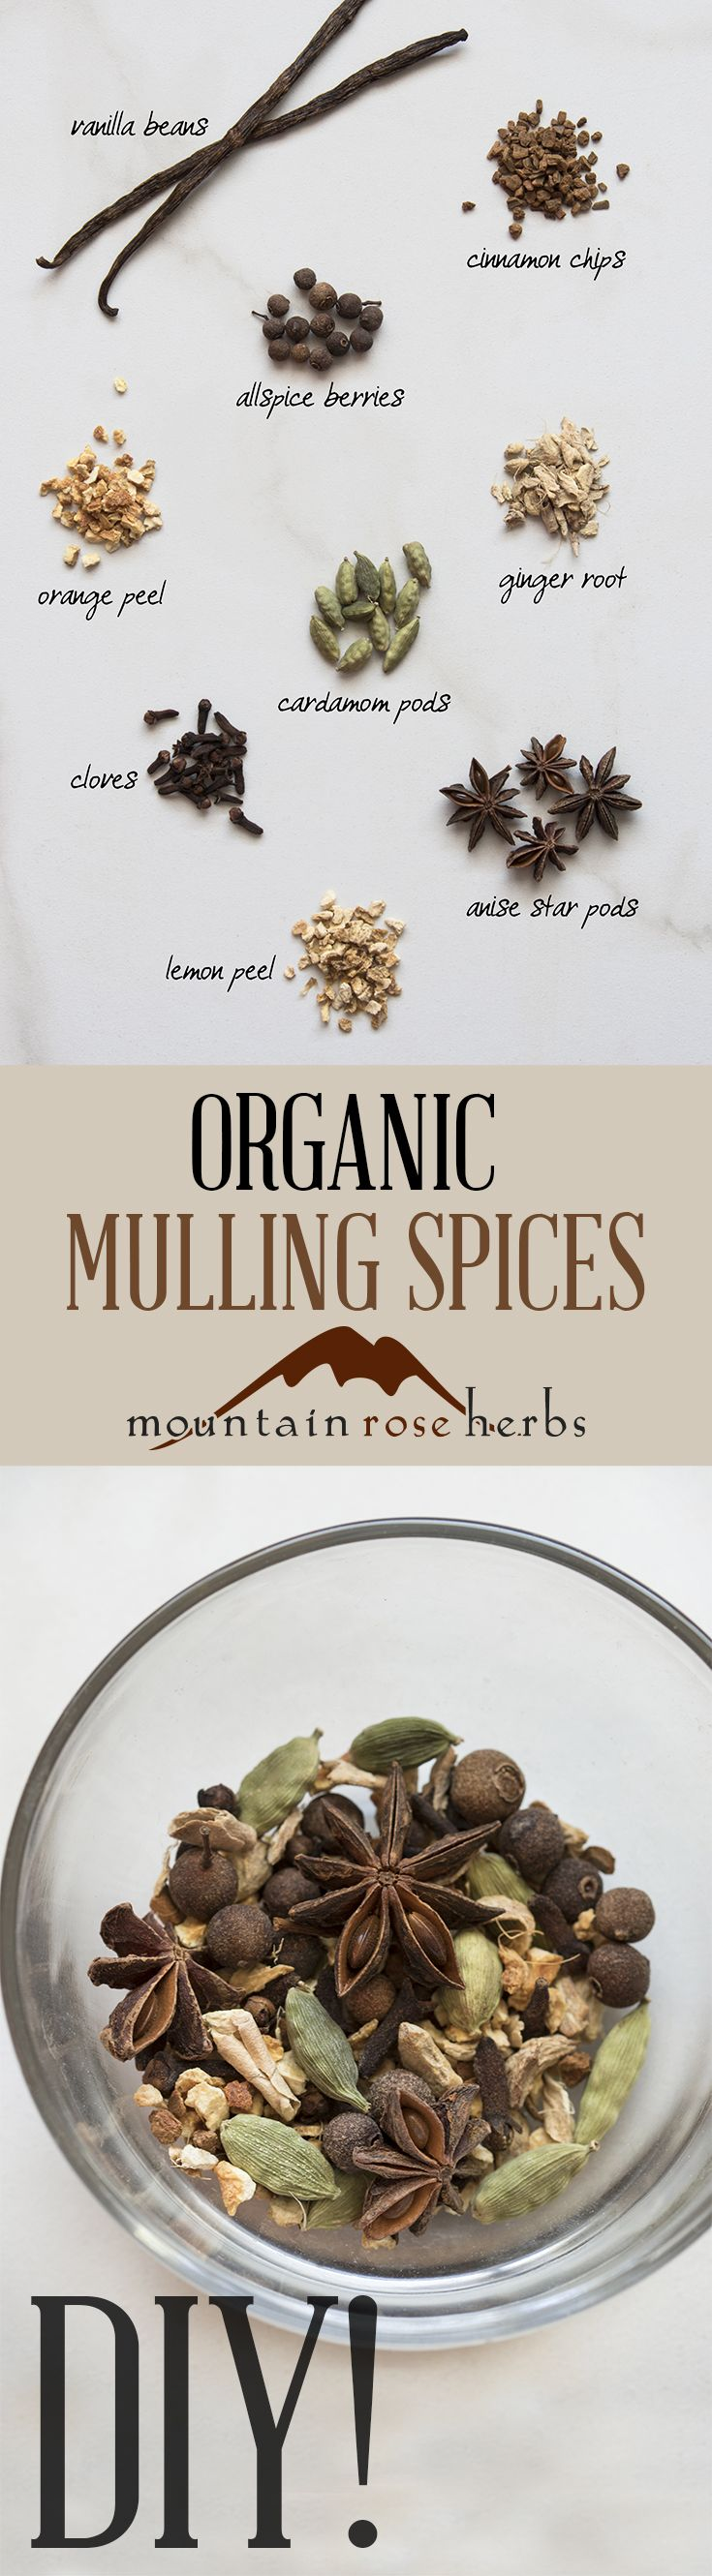 Mulling Spice Recipe by Mountain Rose Herbs                                                                                                                                                                                 More